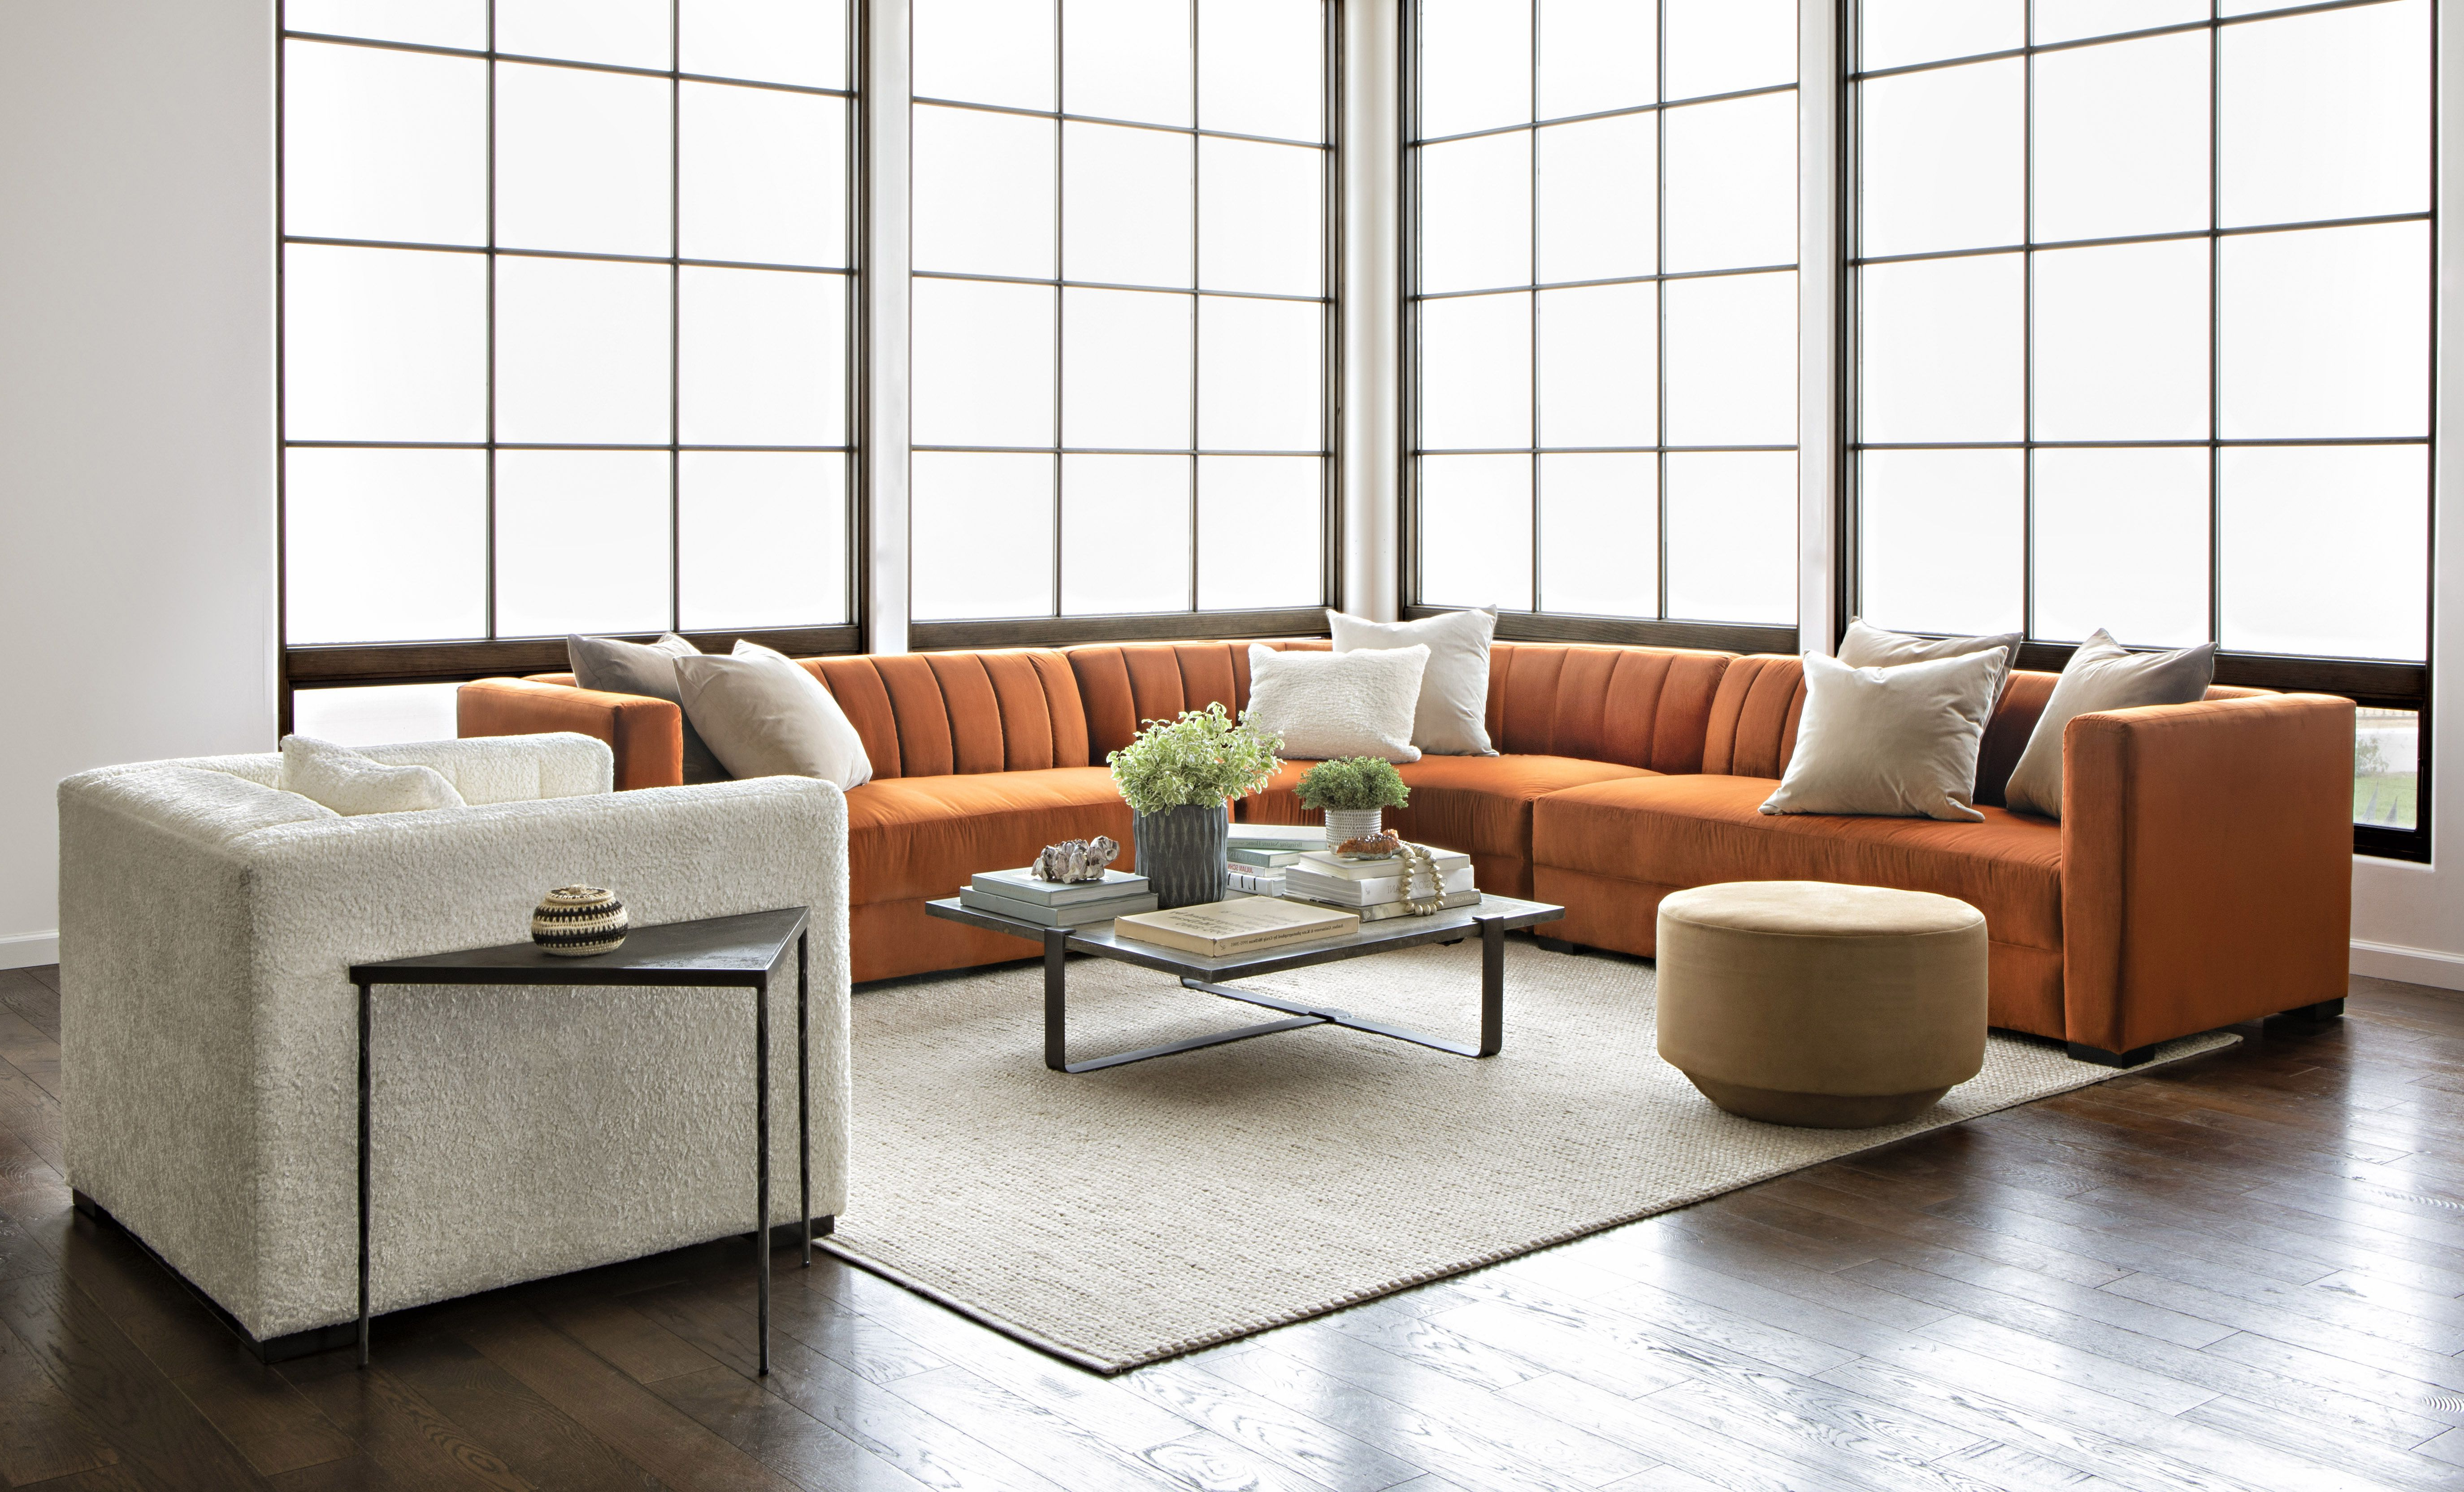 Liv Arm Sofa Chairs By Nate Berkus And Jeremiah Brent Pertaining To Well Liked Soane 3 Piece Sectionalnate Berkus And Jeremiah Brent (View 5 of 20)